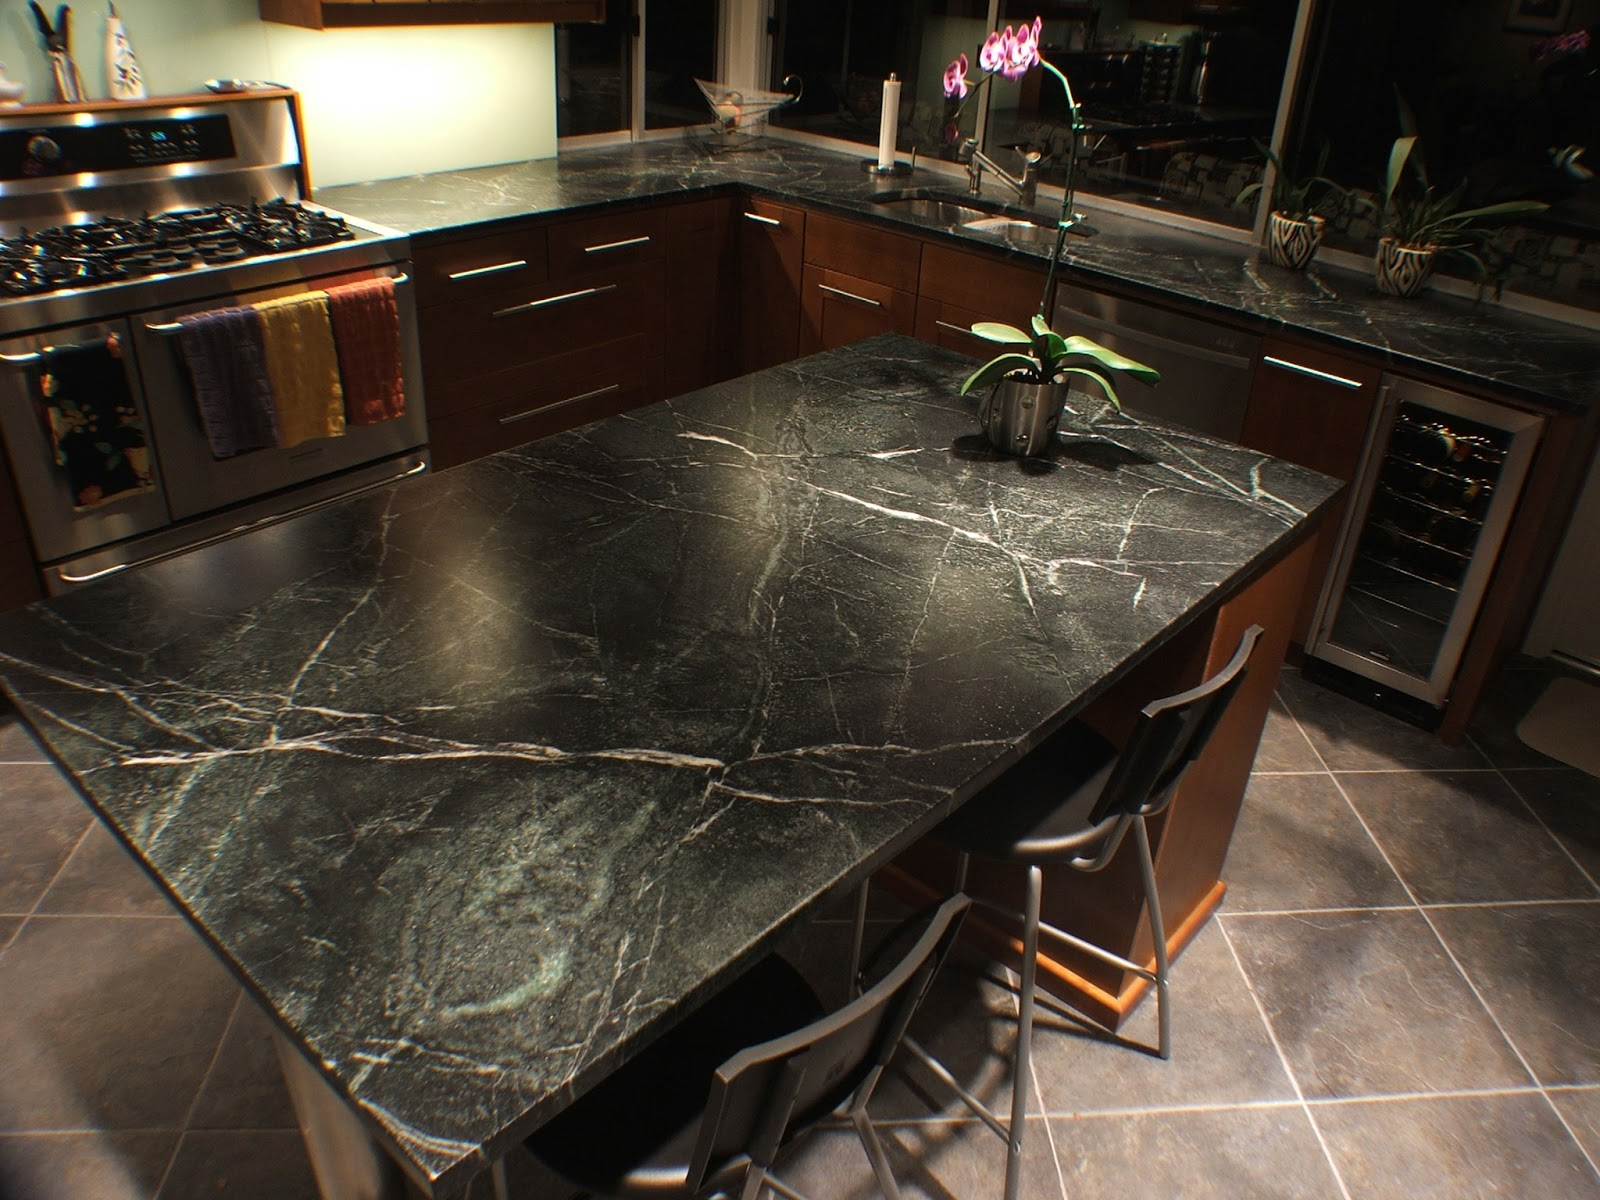 Countertop Stone Types : Dark kitchen with soapstone countertop Photo Source: virginiawhalen ...